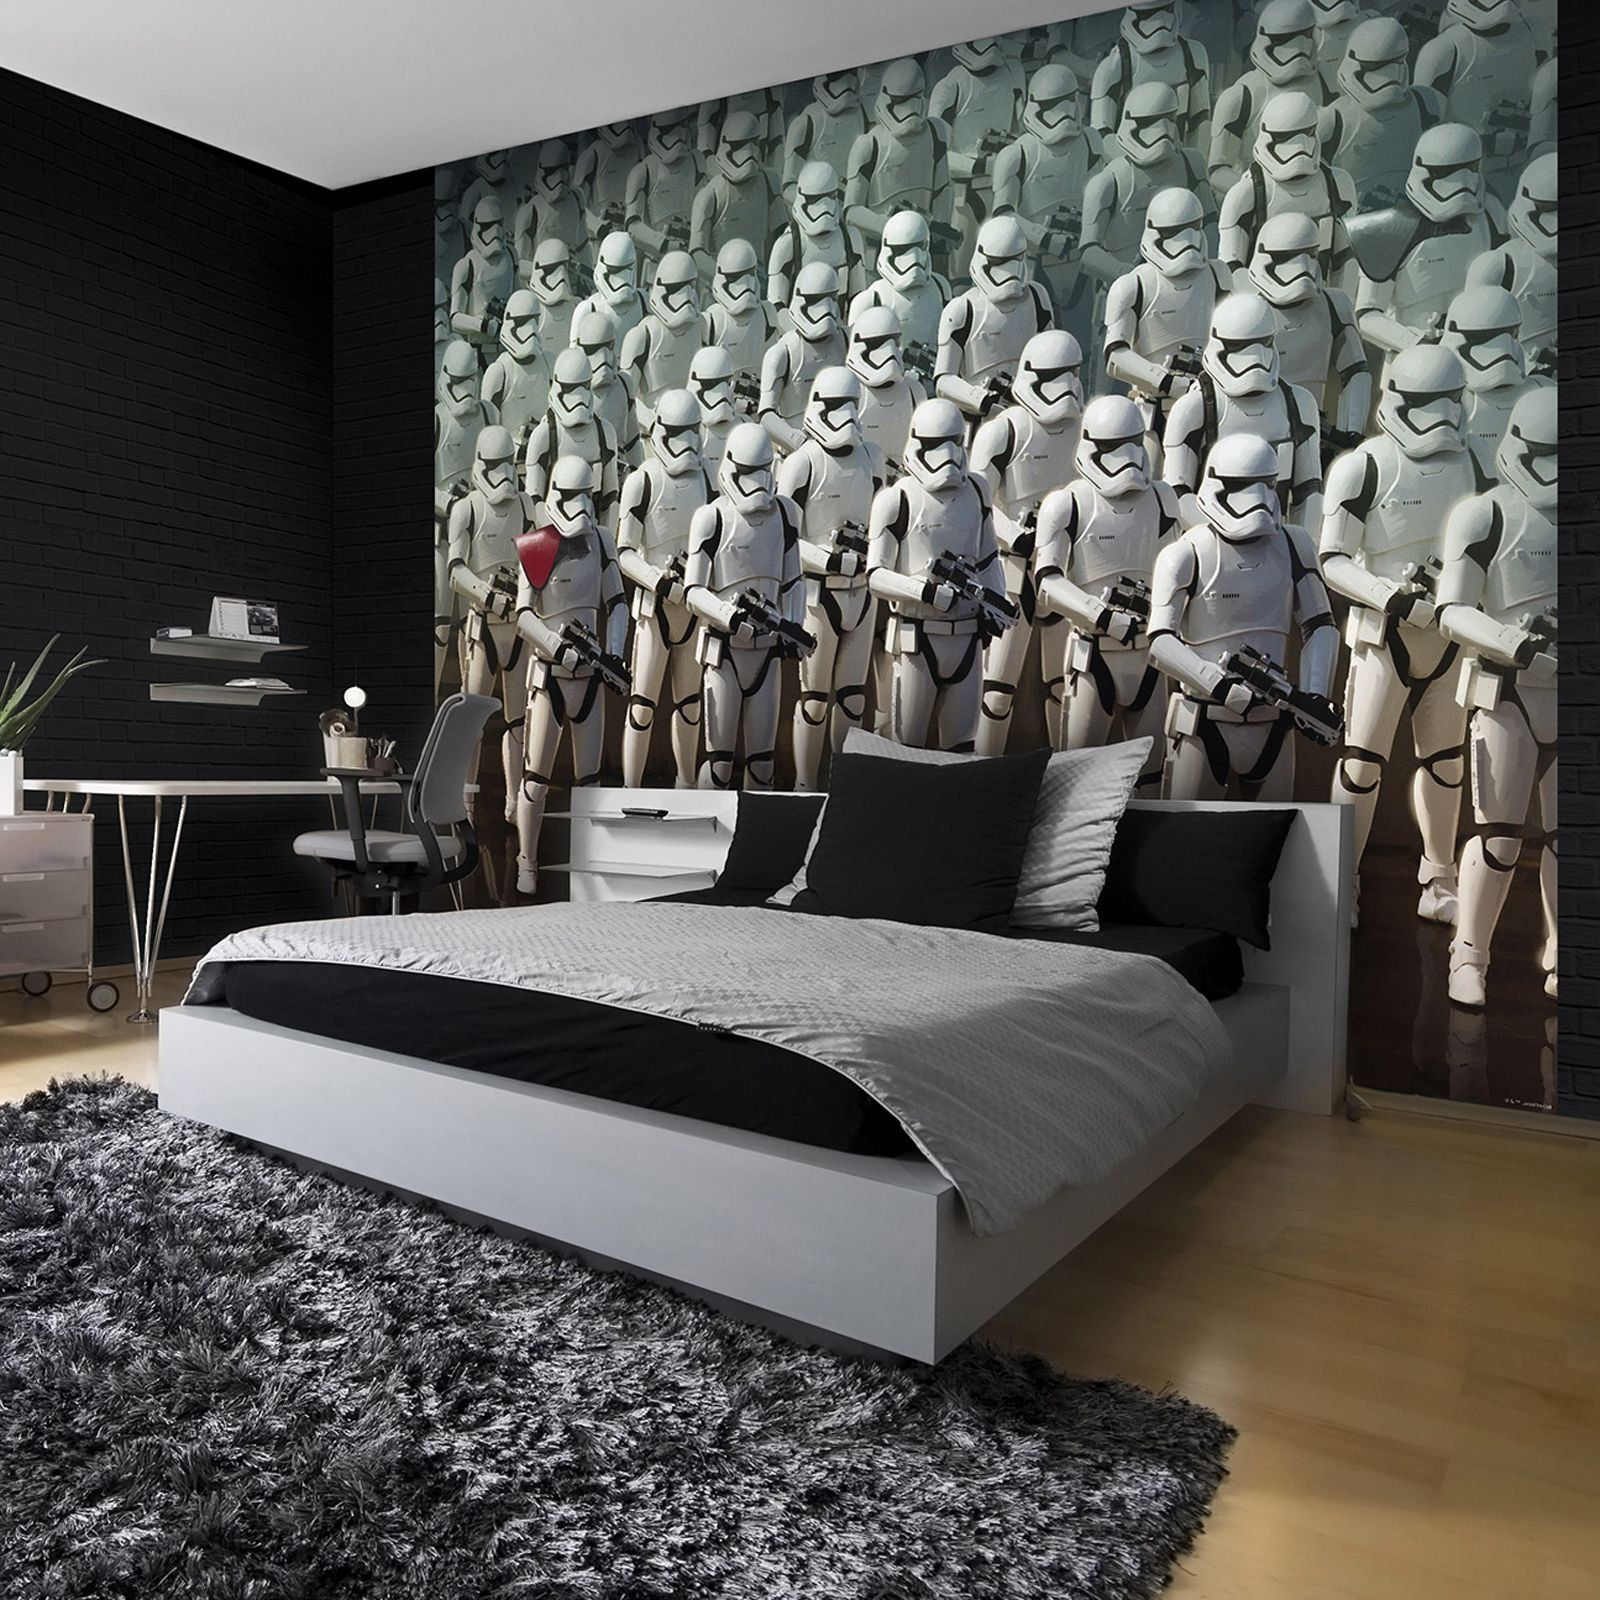 Star wars stormtrooper wall mural dream bedroom star for Boys room wall mural